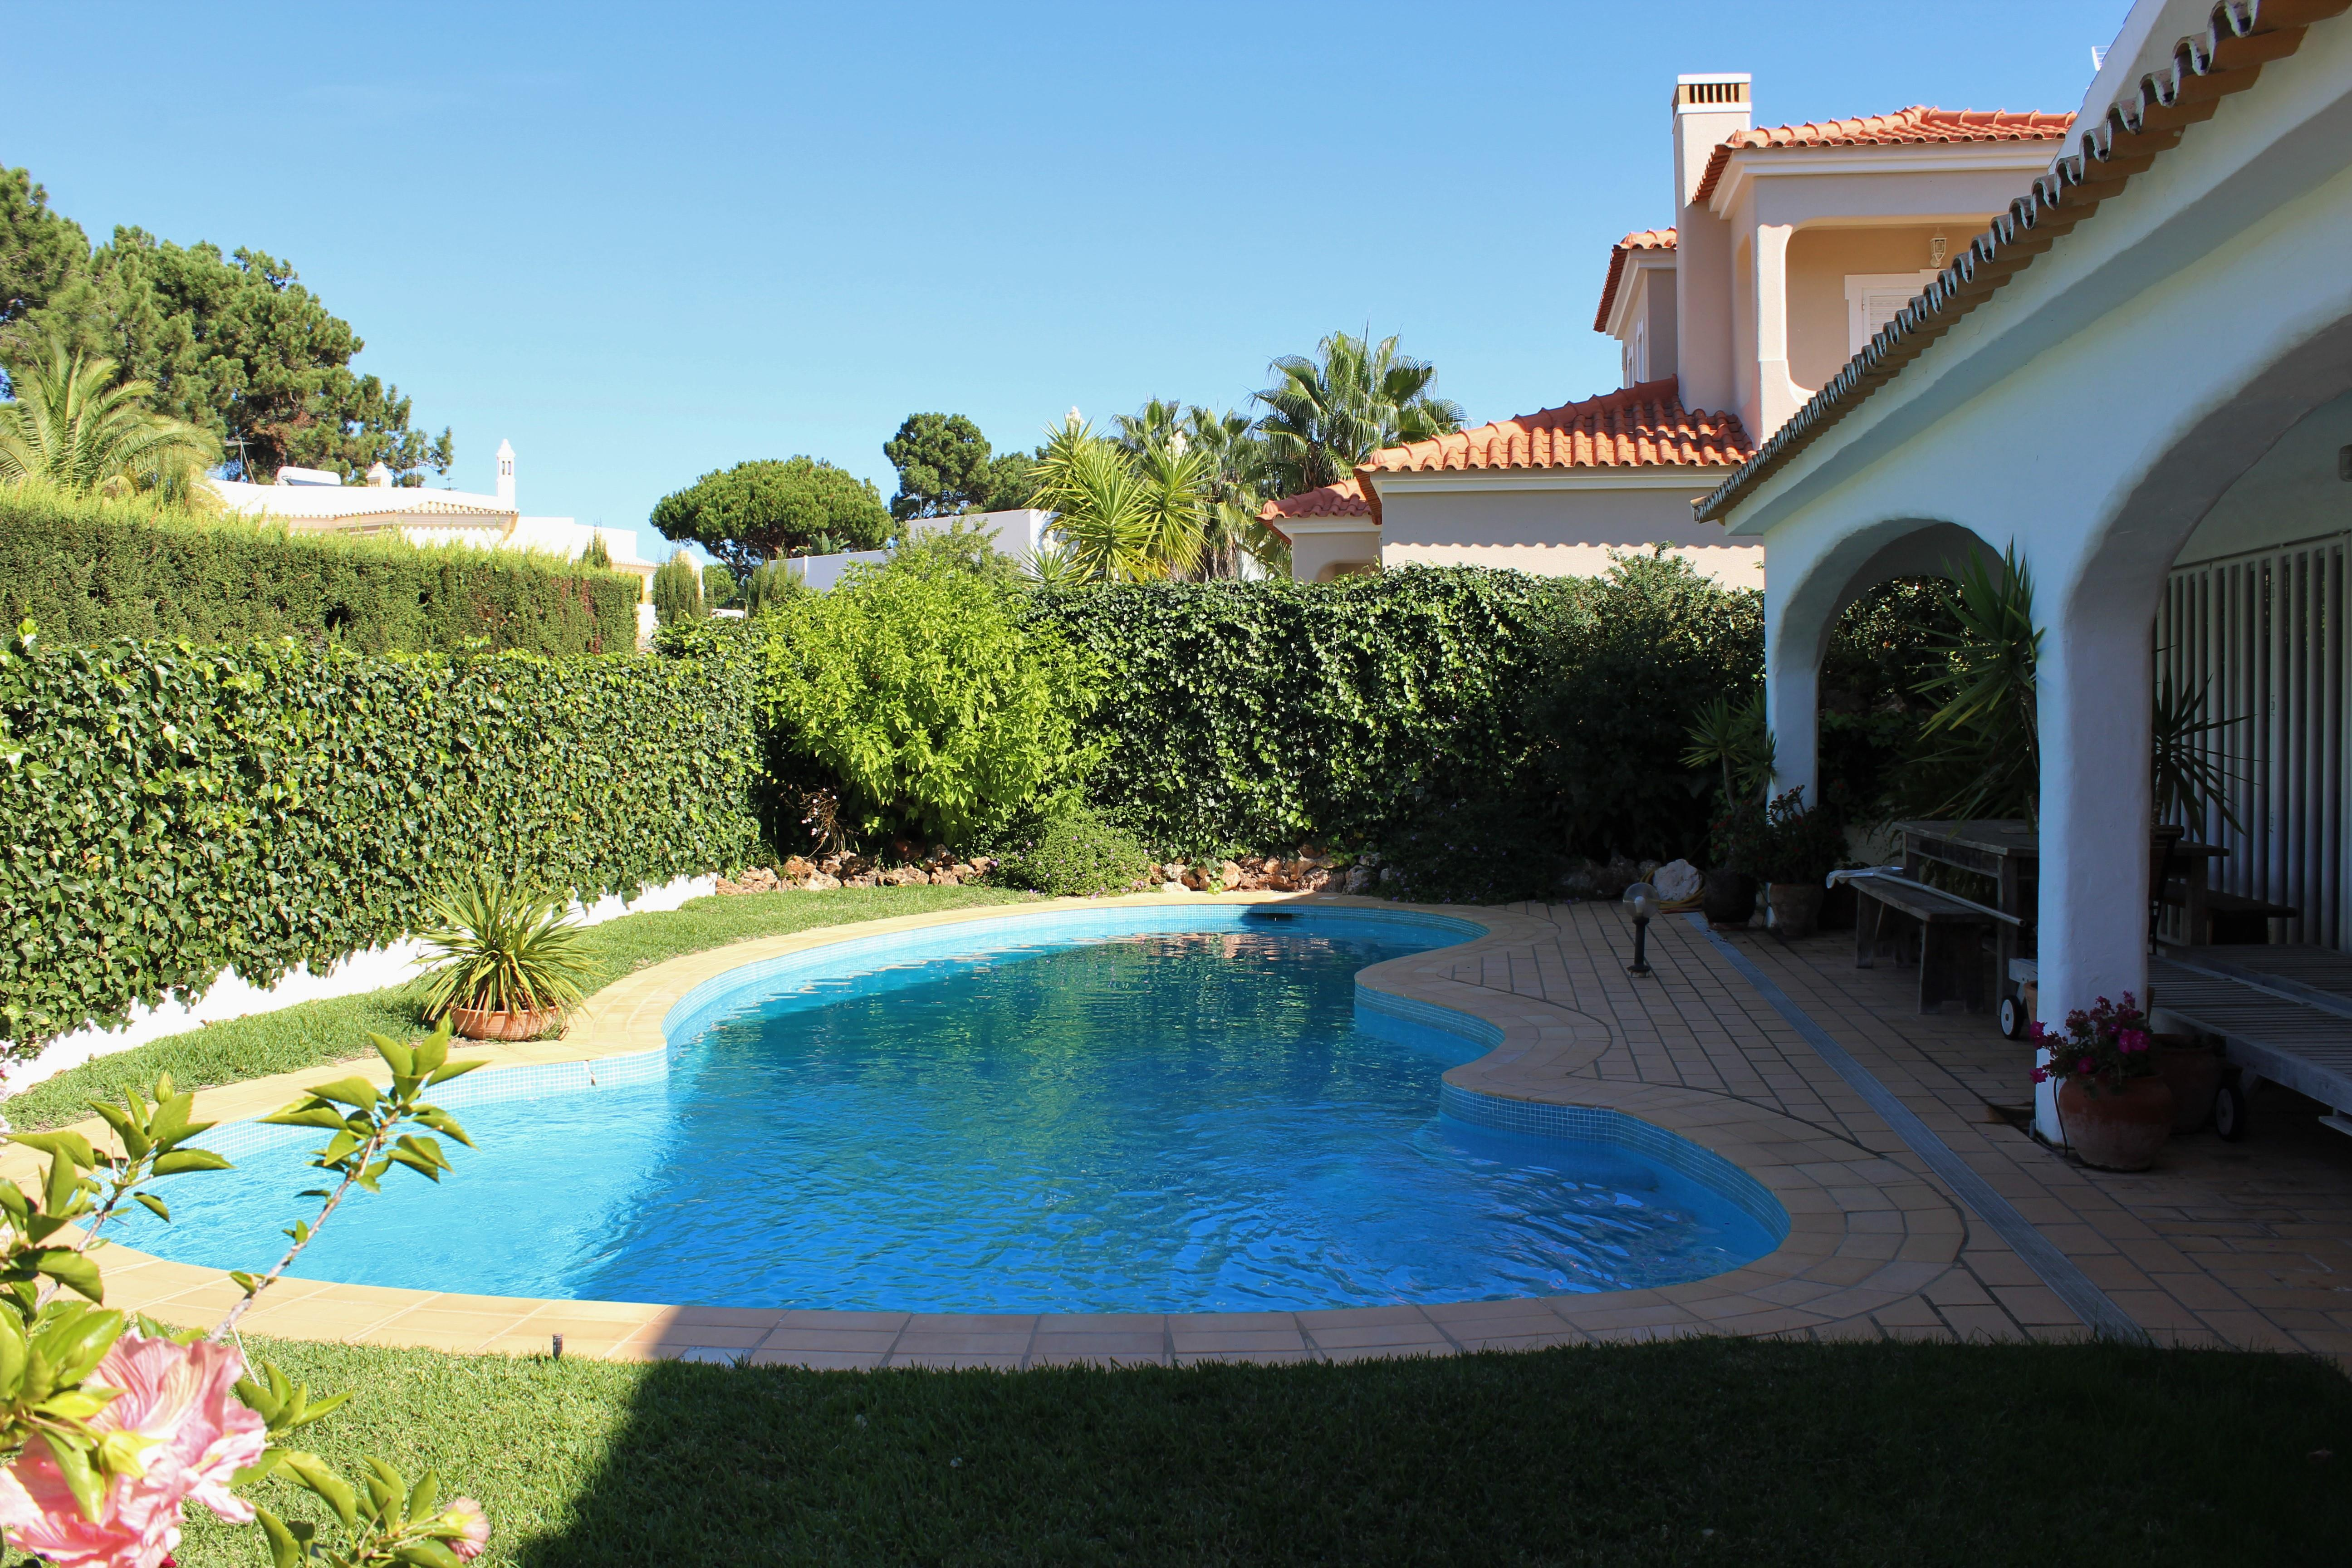 Single Family Home for Sale at Detached house, 3 bedrooms, for Sale Loule, Algarve 8125-001 Portugal